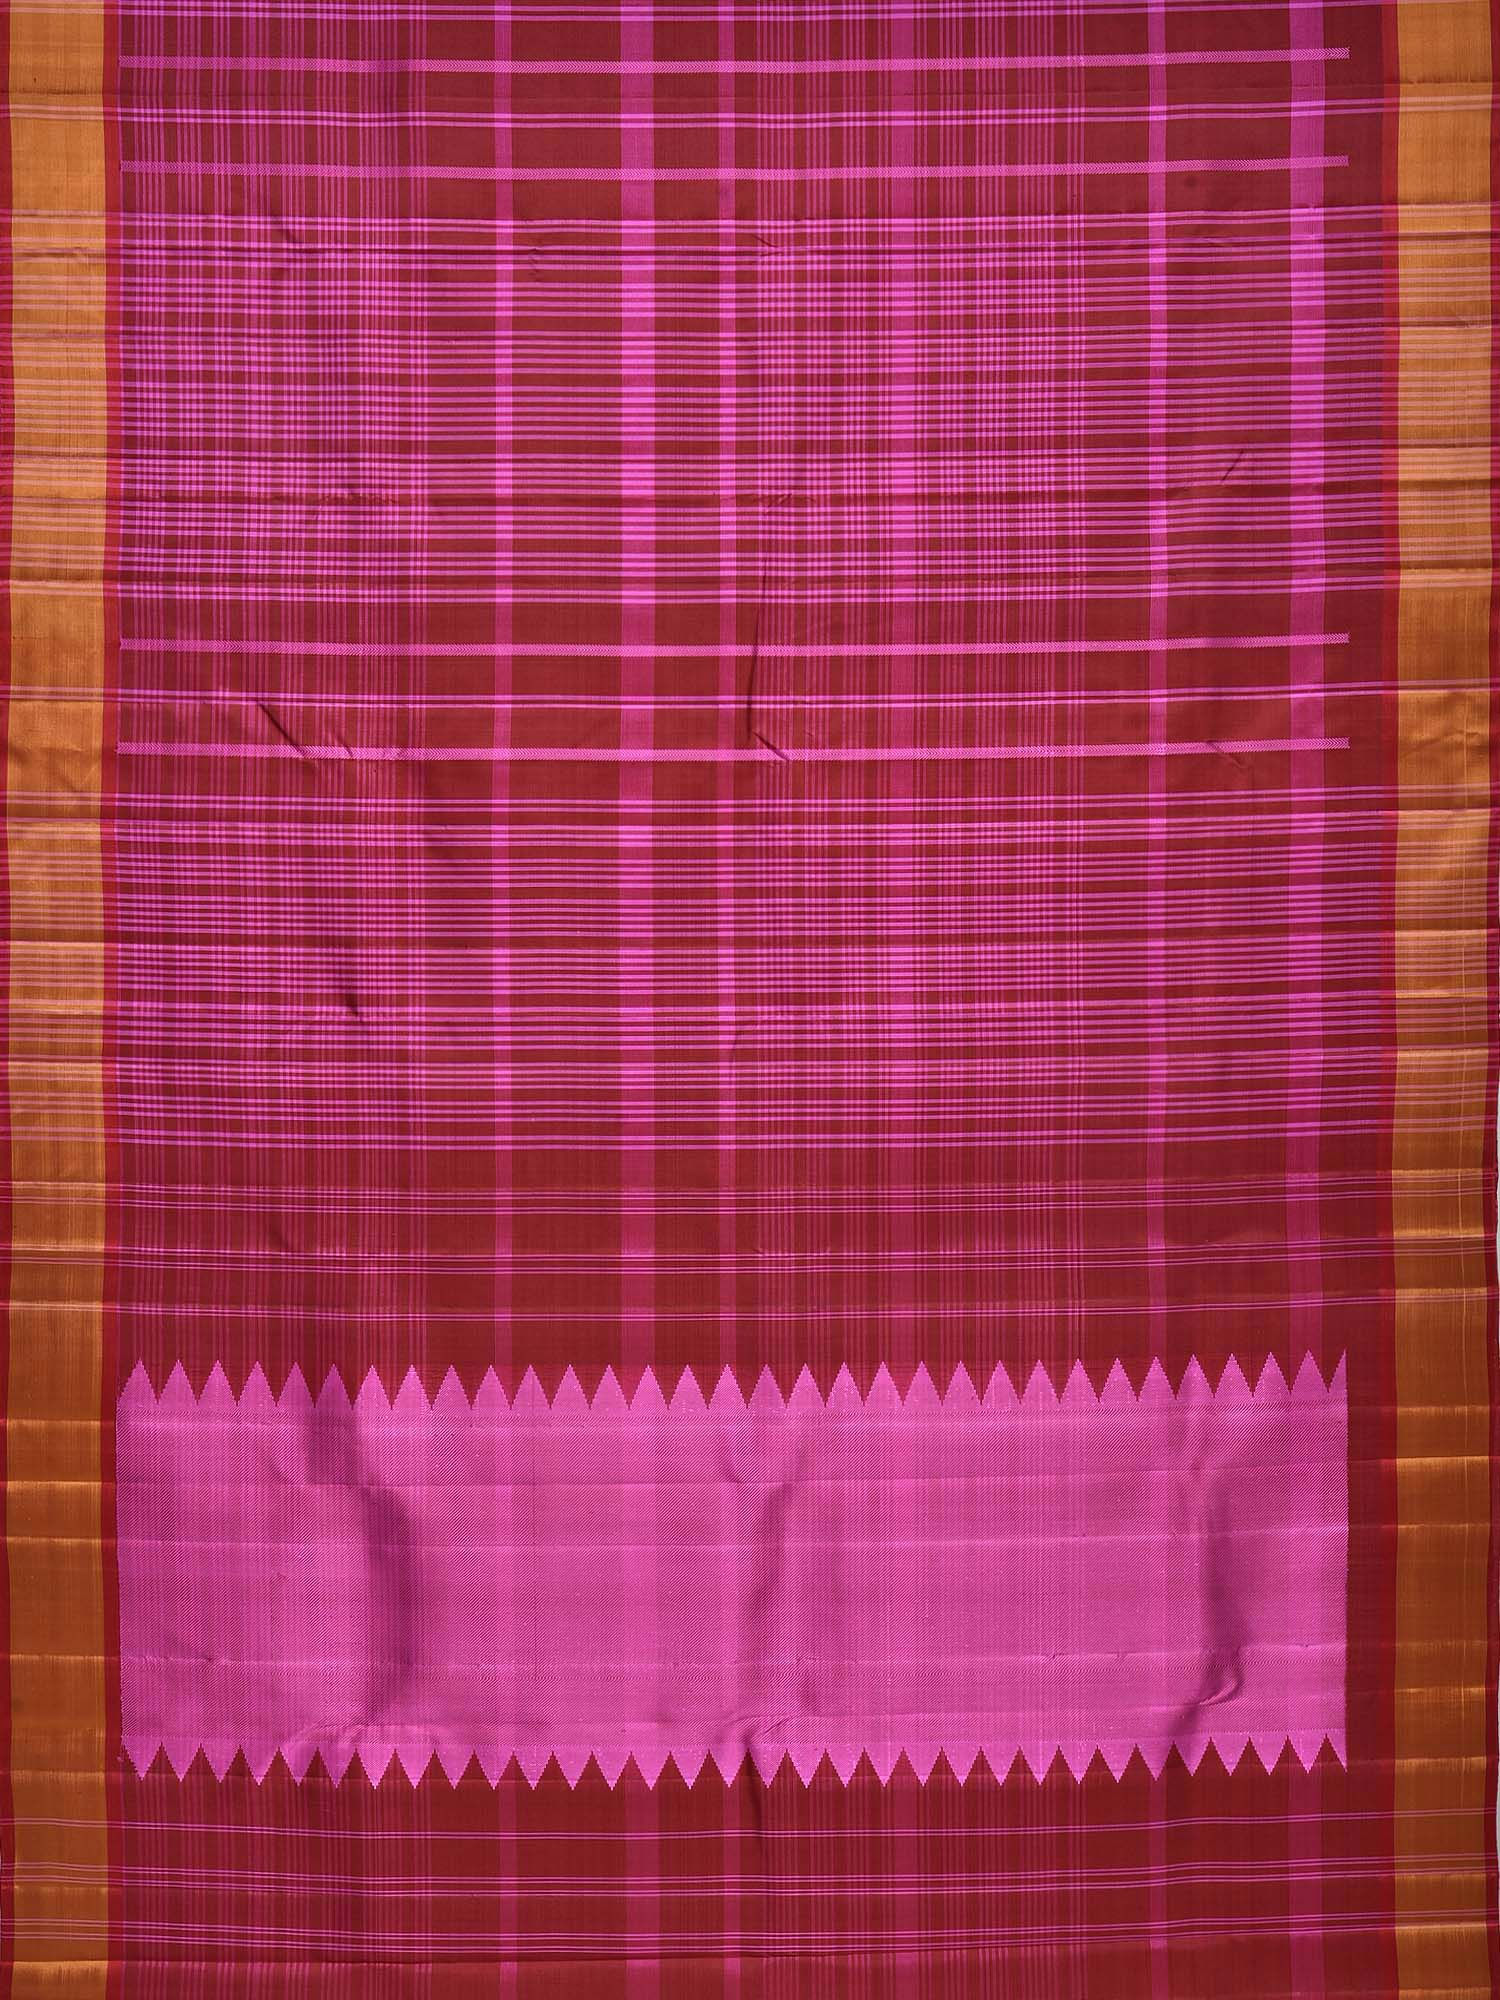 Maroon and Pink Kanchipuram Silk Handloom Saree with Checks Design k0433